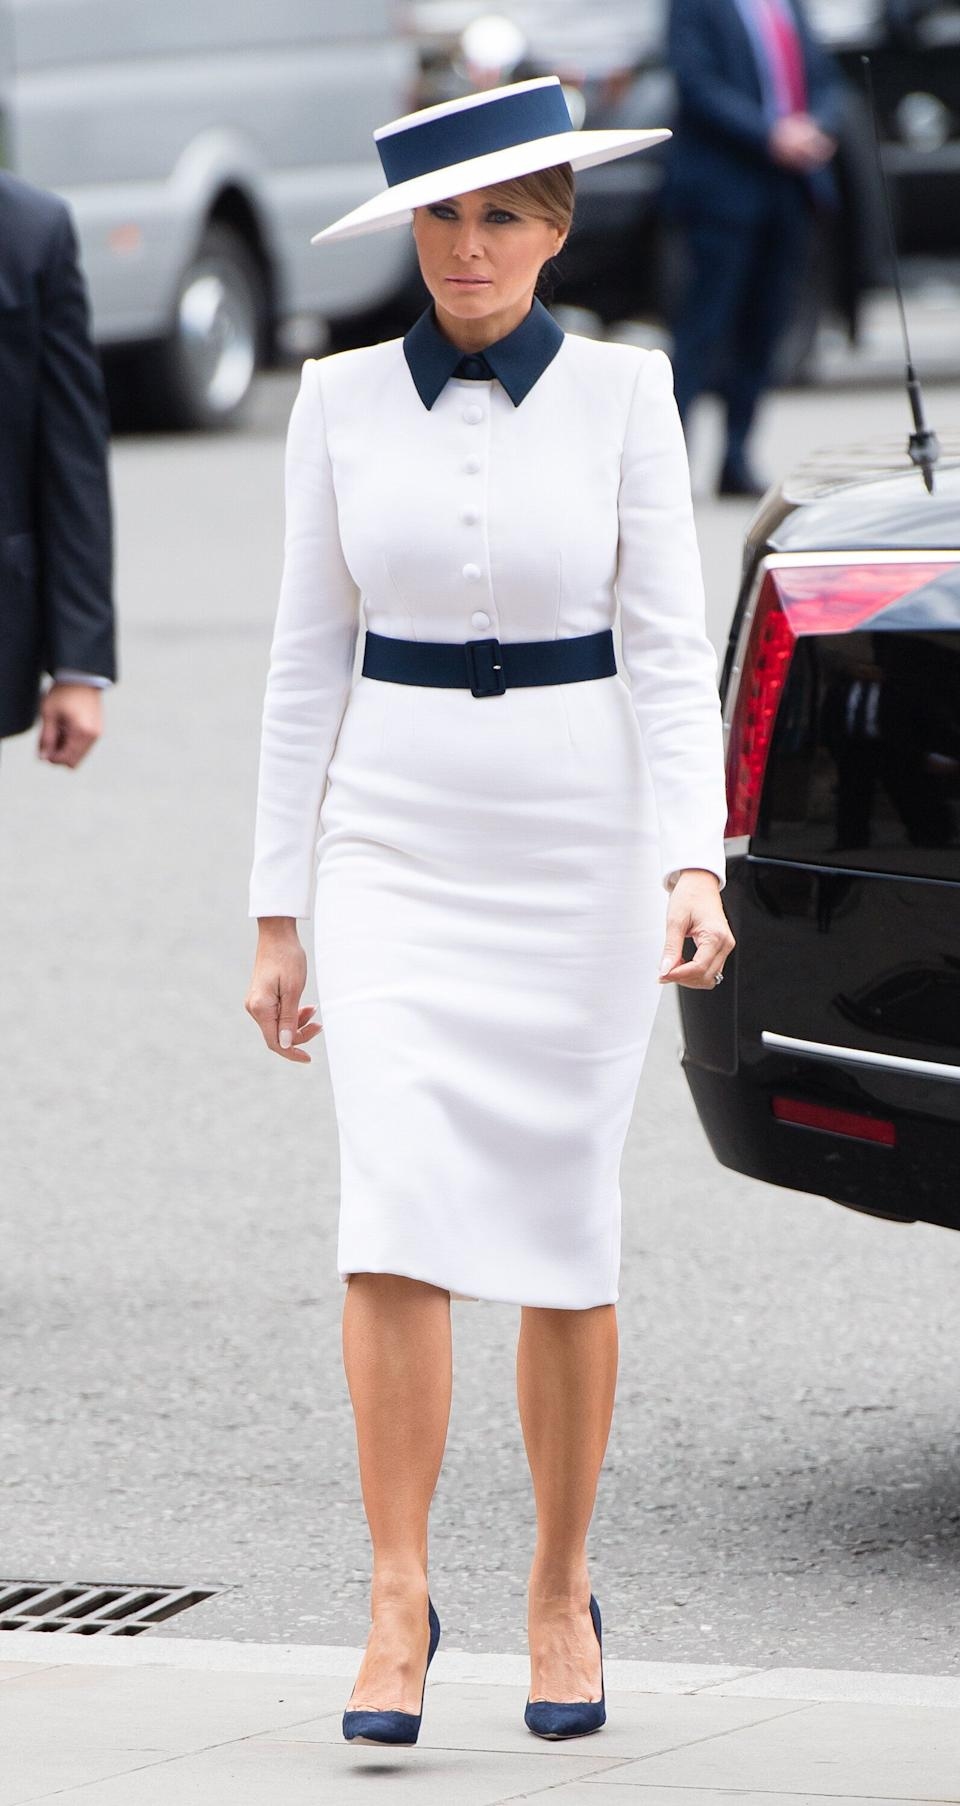 LONDON, ENGLAND - JUNE 03: First Lady Melania Trump arrives for a visit to Westminster Abbey on June 03, 2019 in London, England. President Trump's three-day state visit will include lunch with the Queen, and a State Banquet at Buckingham Palace, as well as business meetings with the Prime Minister and the Duke of York, before travelling to Portsmouth to mark the 75th anniversary of the D-Day landings.  (Photo by Samir Hussein/Samir Hussein/WireImage)